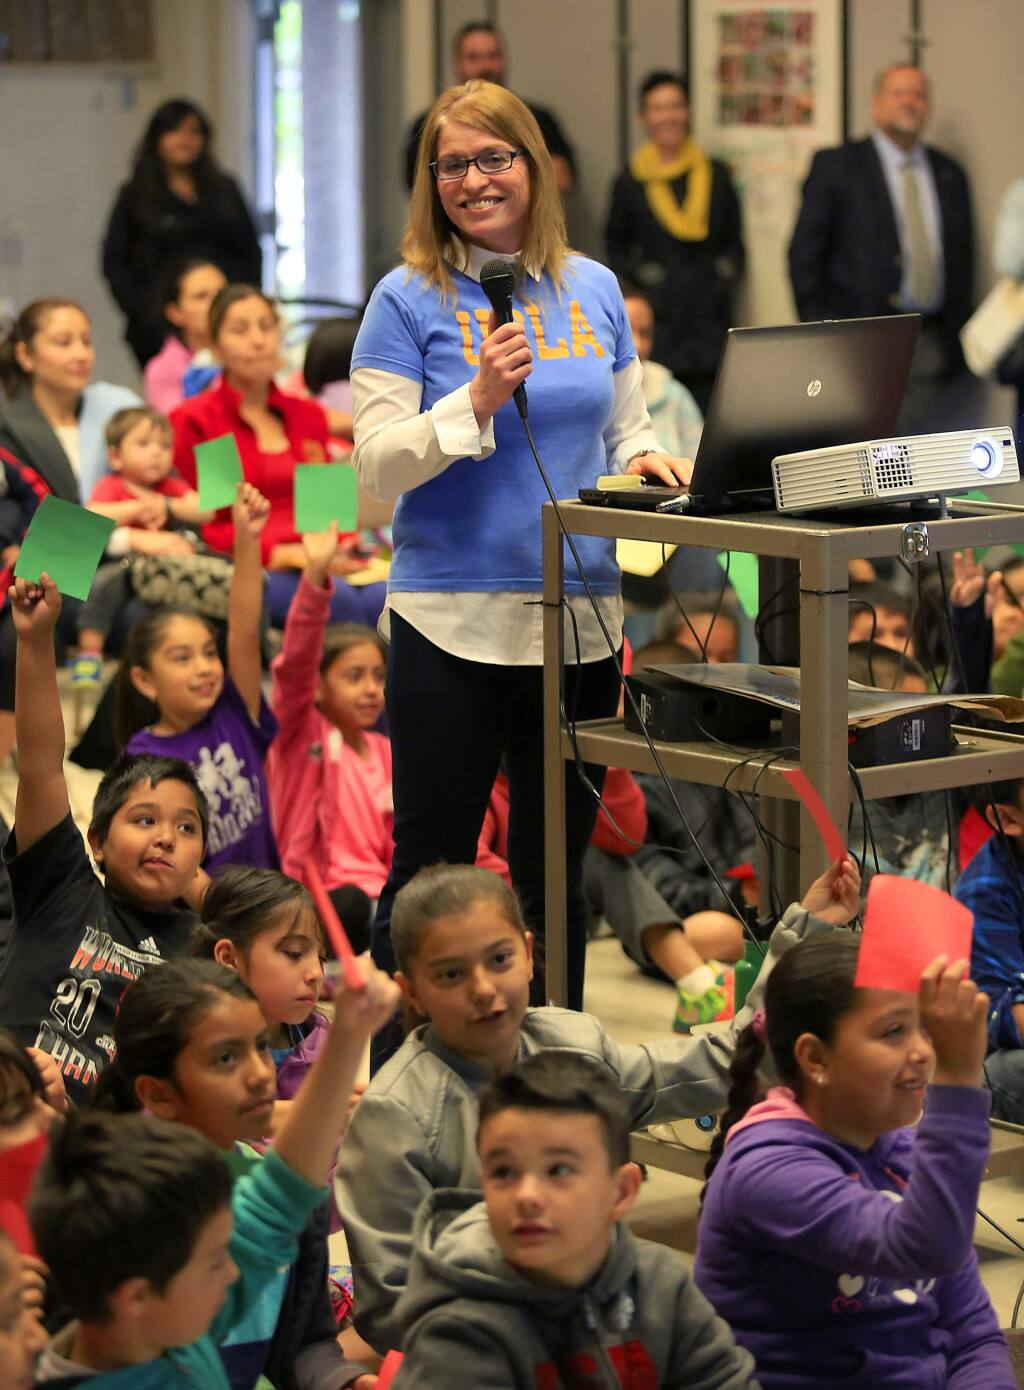 Santa Rosa City Schools board member Jenni Klose quizzes second- and third-grade Helen Lehman elementary school students about professions needing a college degree. Klose founded The College Tee Project to encourage young students to attend college. (JOHN BURGESS / The Press Democrat)